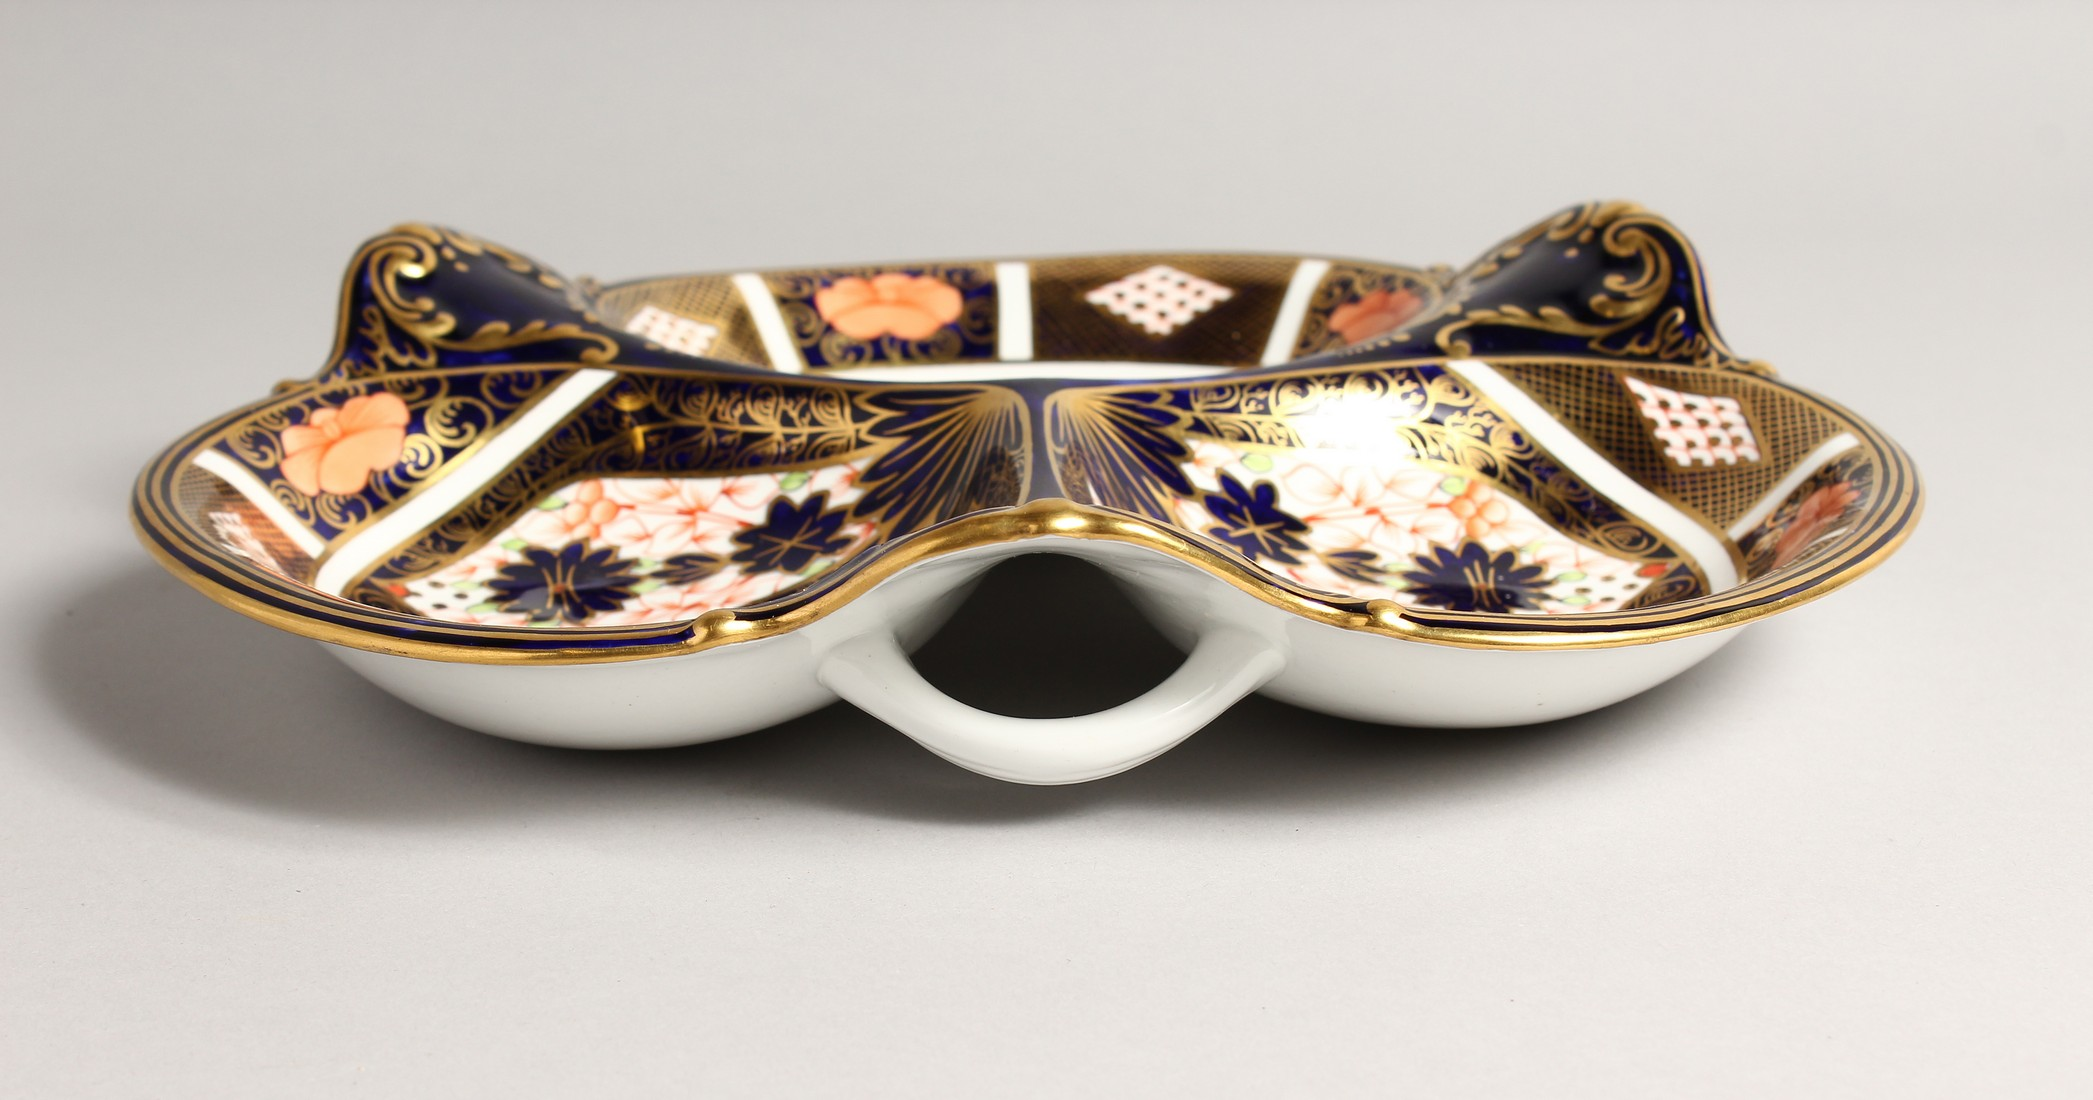 A ROYAL CROWN DERBY JAPAN PATTERN THREE DIVISION DISH. No. 1667 &1128 11ins wide. - Image 4 of 6